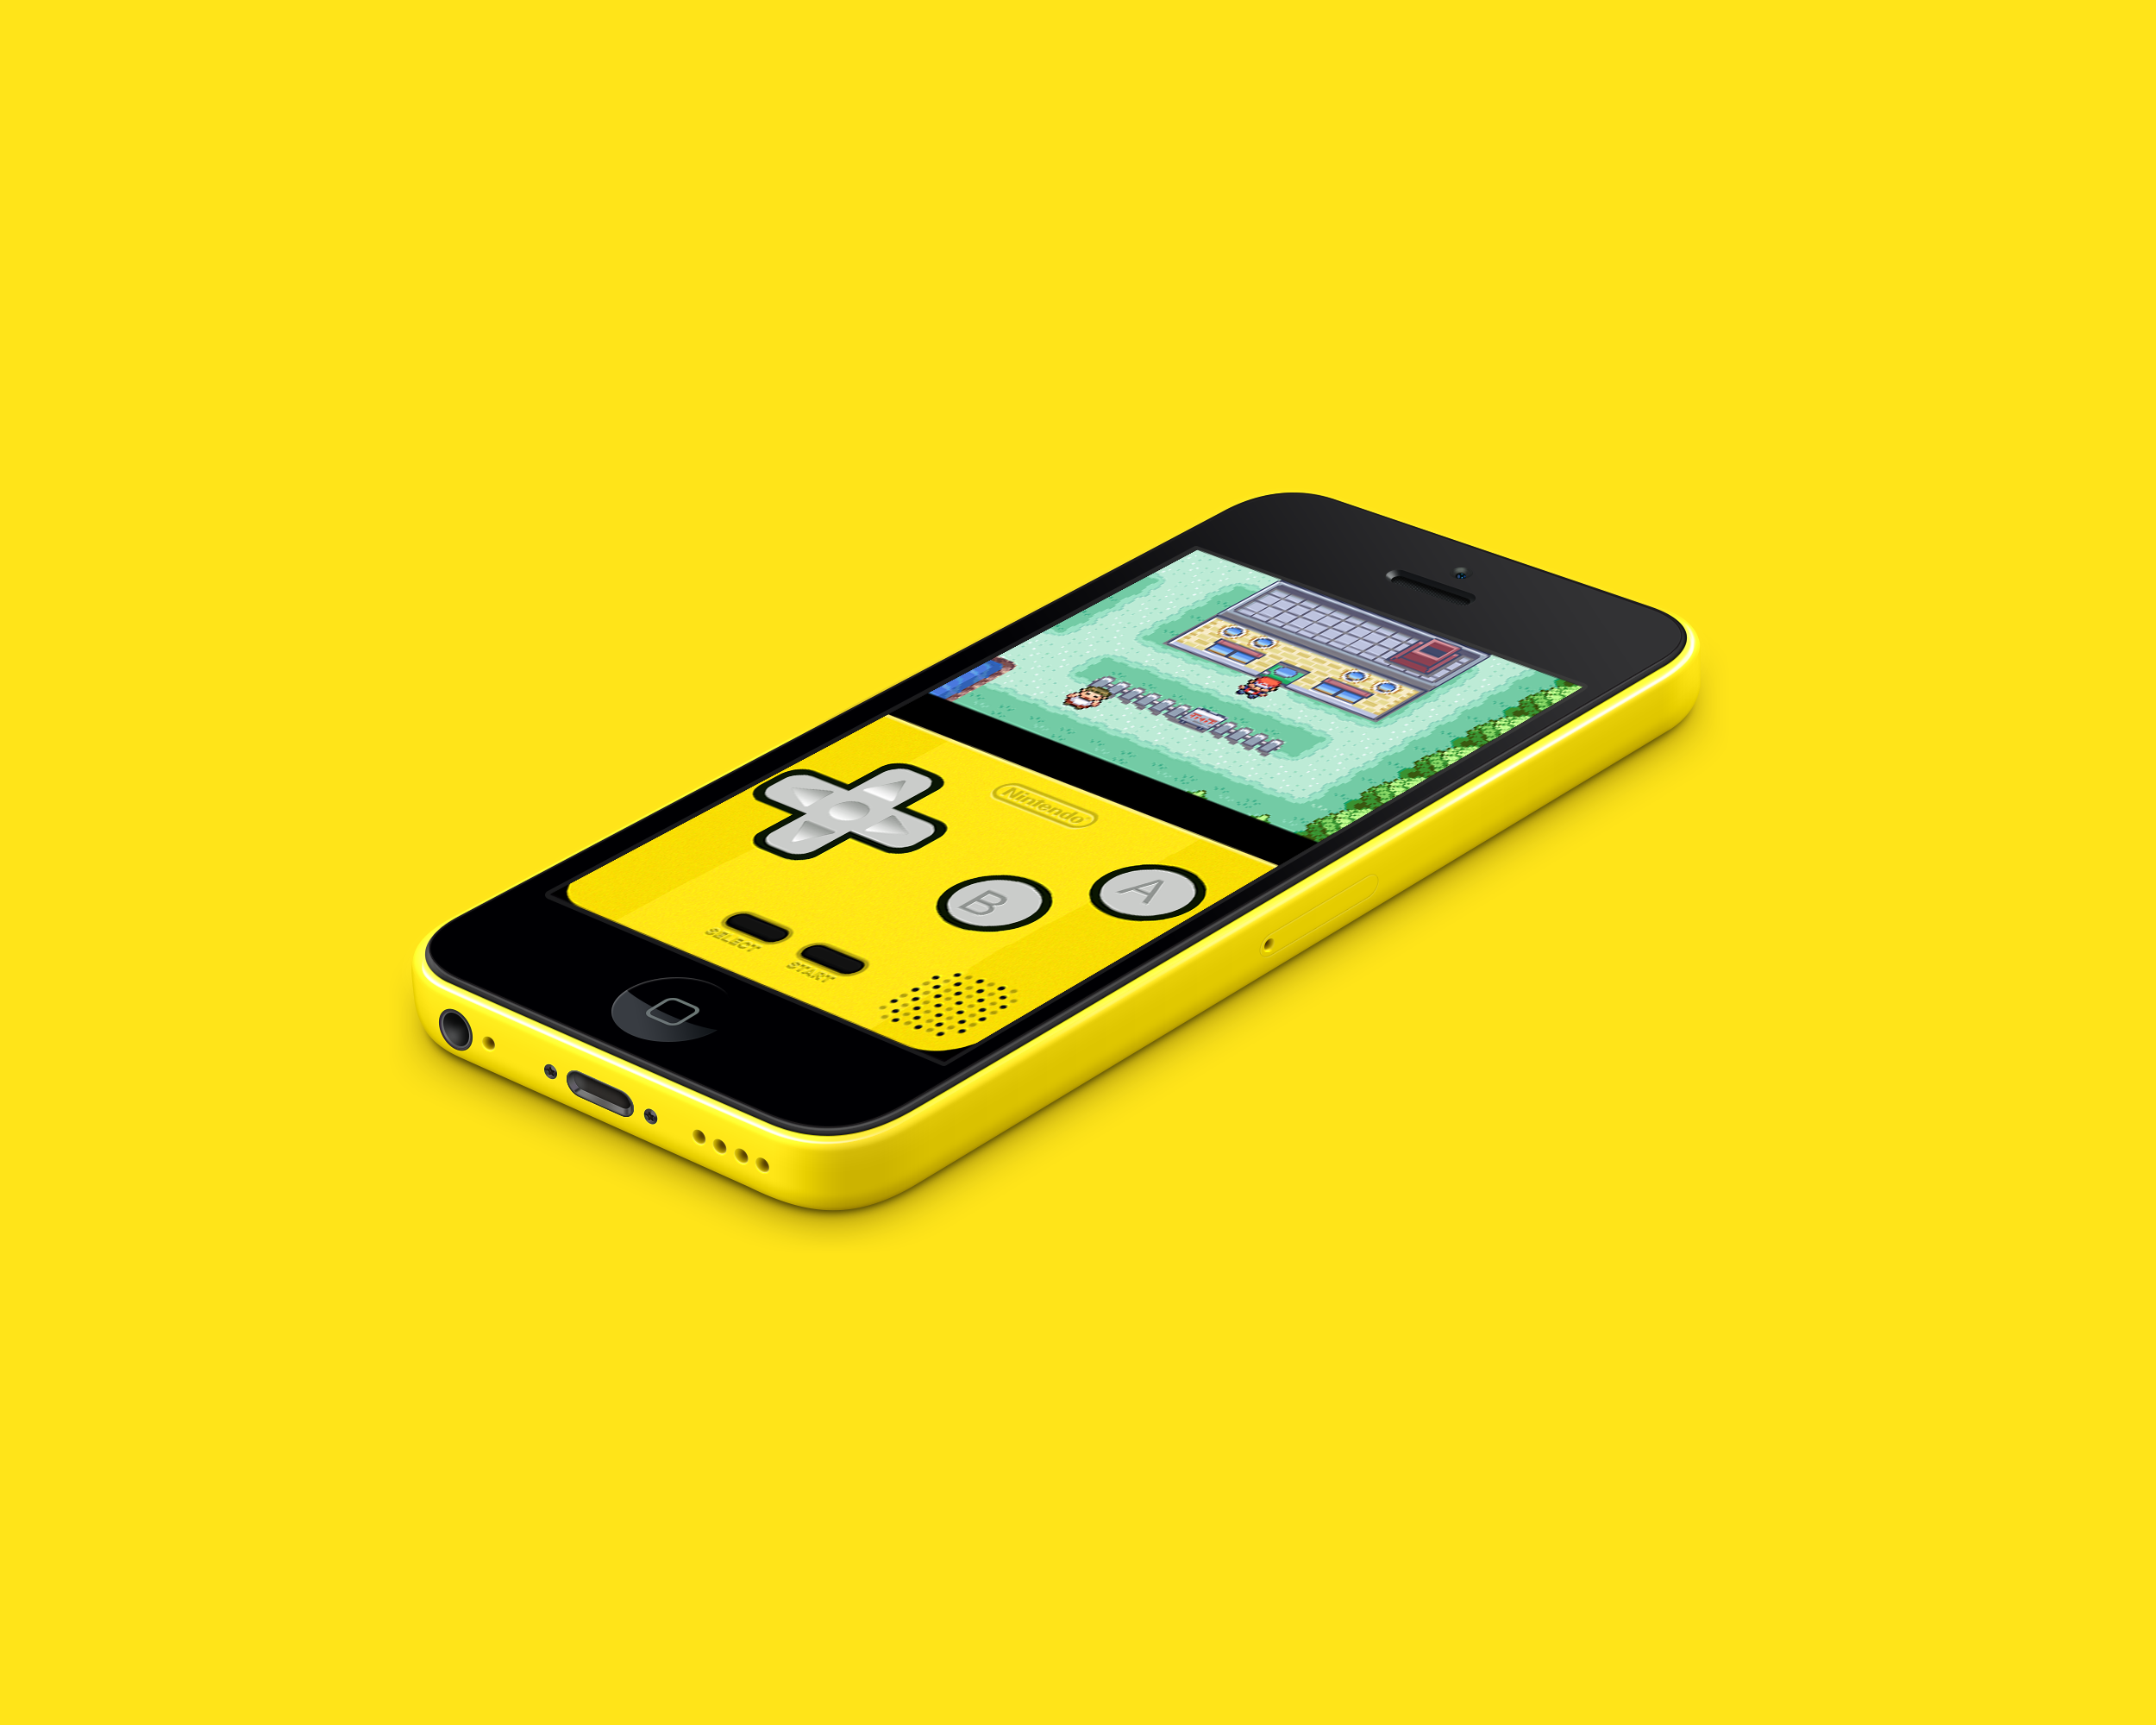 Iphone 5c Gba Yellow By Vitalovitalo On Deviantart